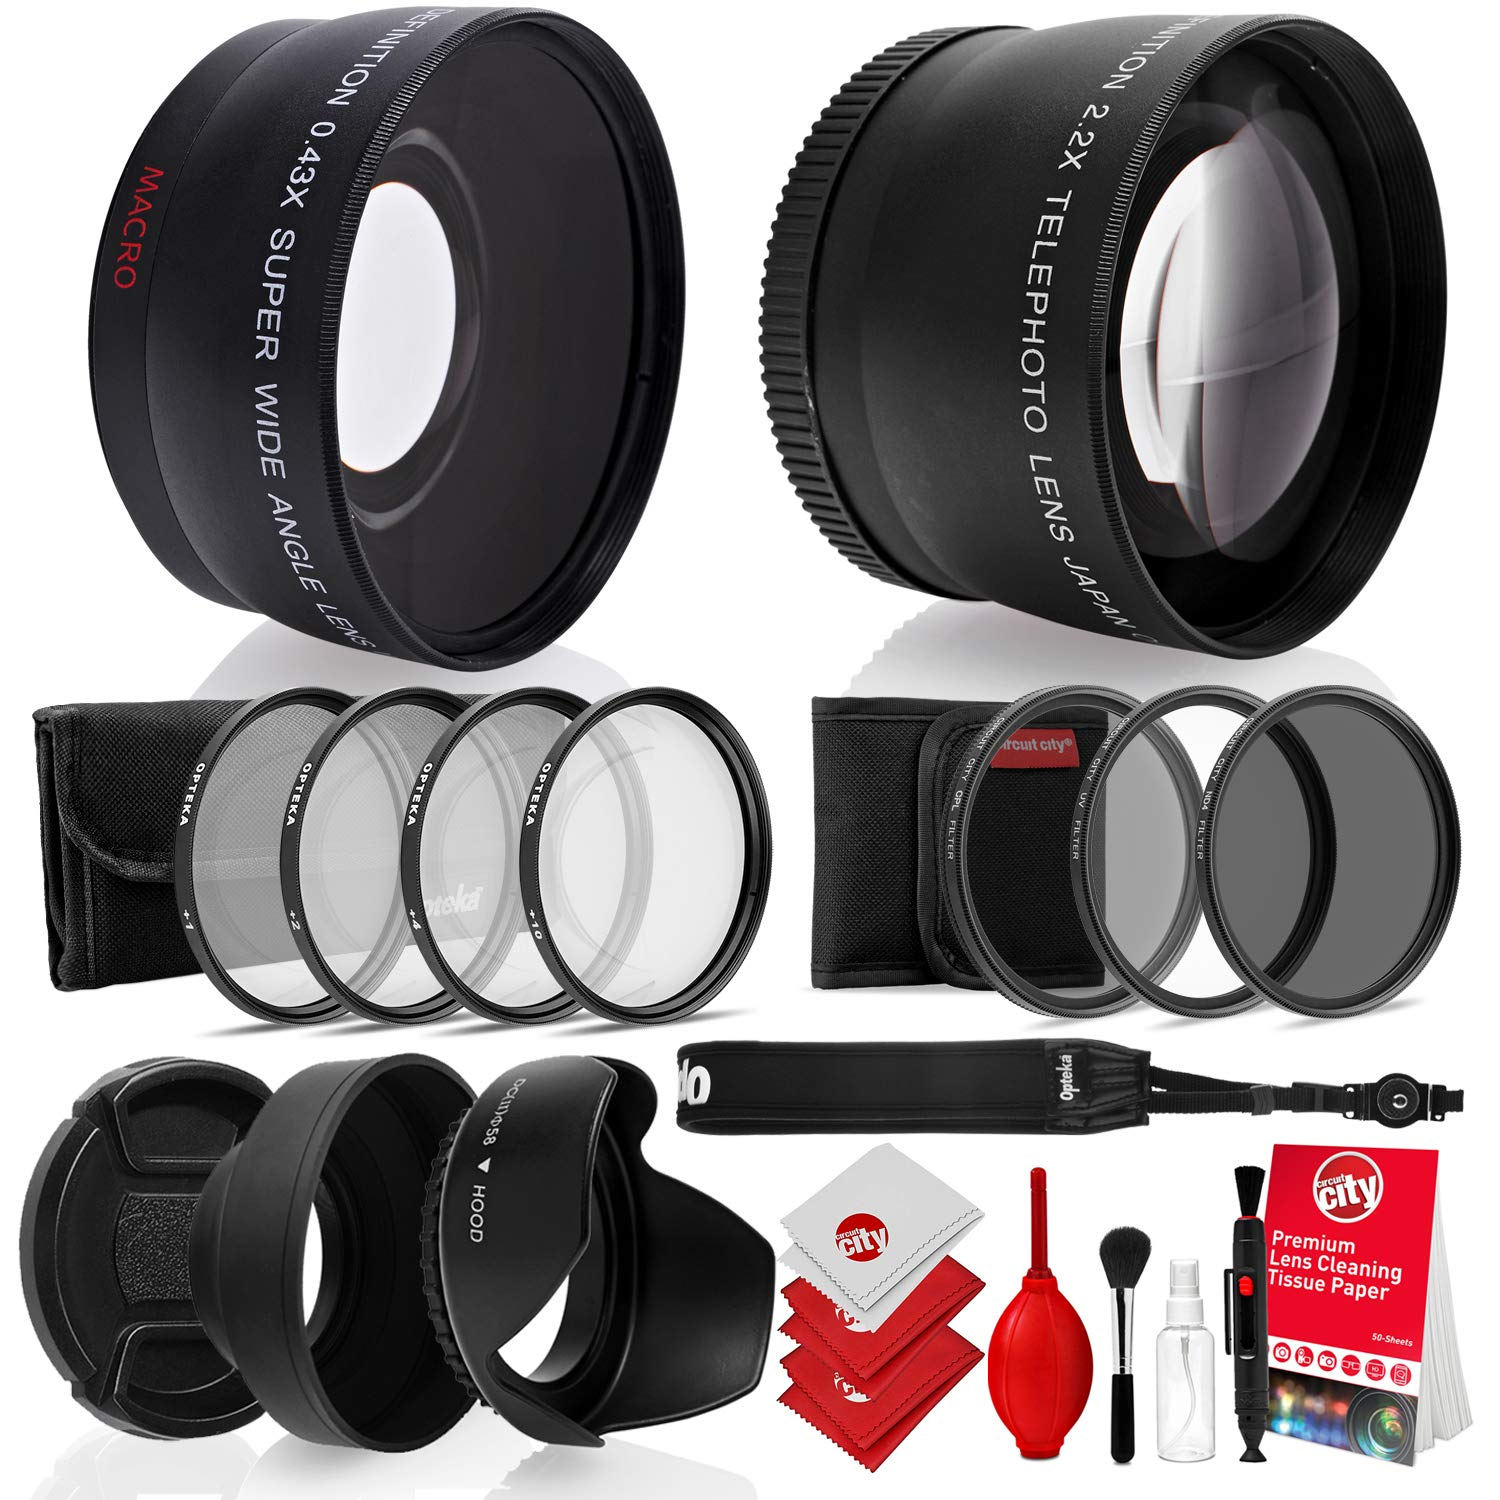 Opteka 52mm 0.43X HD Wide Angle Lens with Macro for Nikon DSLR Bundle with Opteka 52mm 2.2X HD Telephoto Lens and Essential Accessories (8 Items) by Opteka